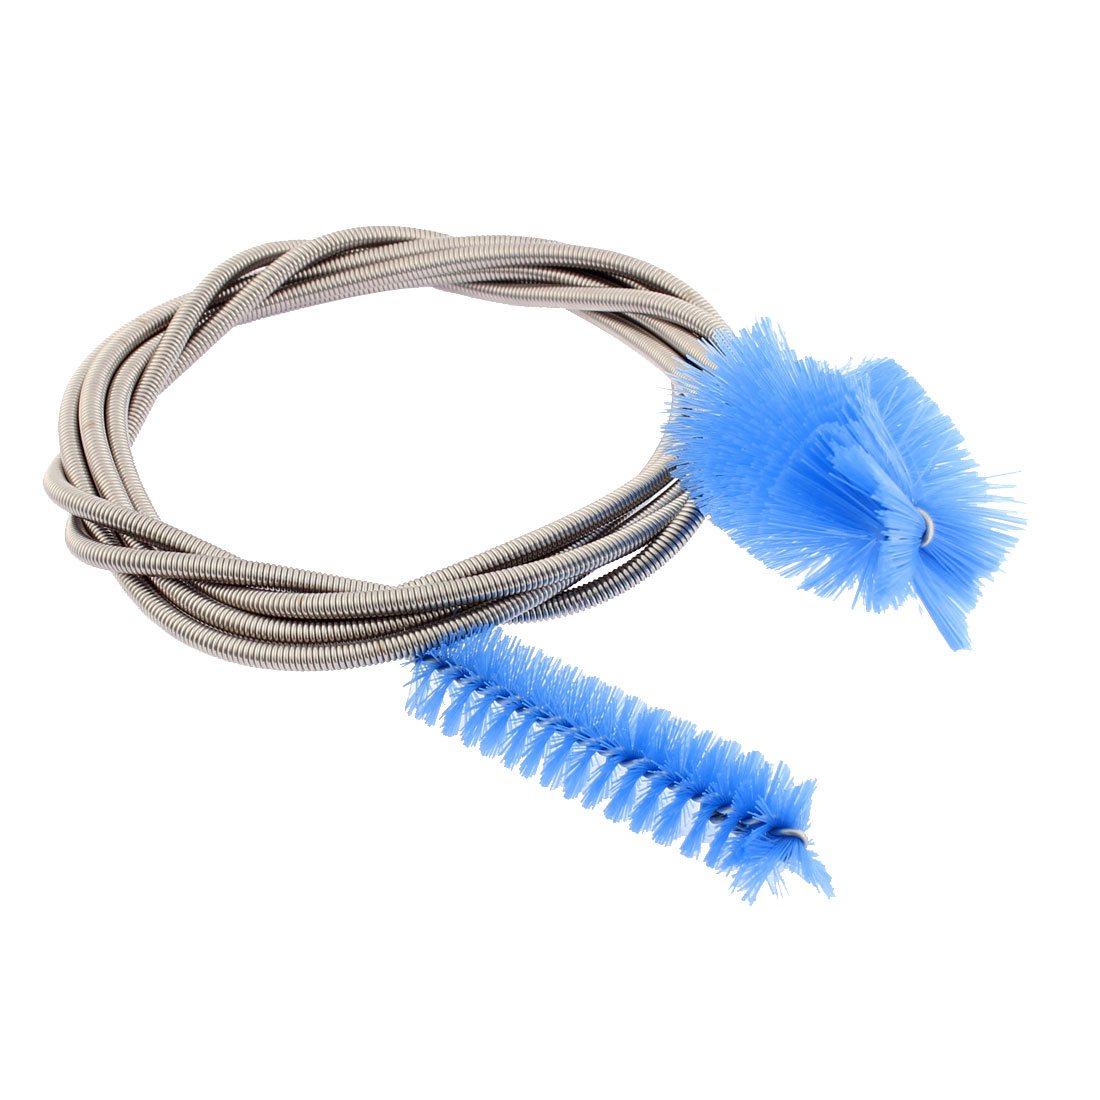 "66"" Total Length Silver Tone Flexible Spring Cleaning Tool Double Ended Tube Filter Pump Hose Pipe Blue Brush Blue for Aquarium Fish Tank"